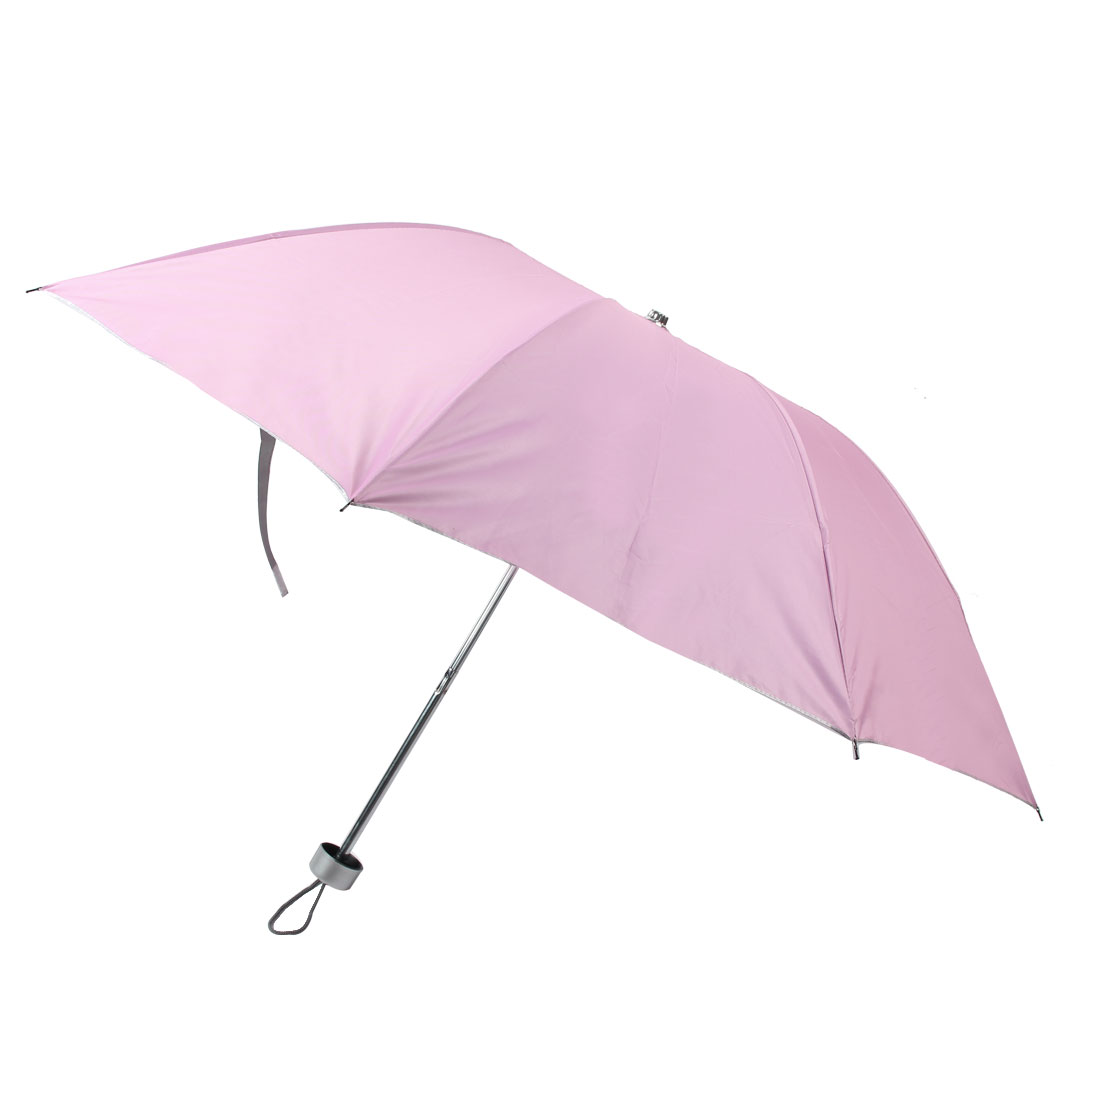 Outdoor Travel Camping Hiking Portable Folded Rain Sun Umbrella Pink 96cm Dia